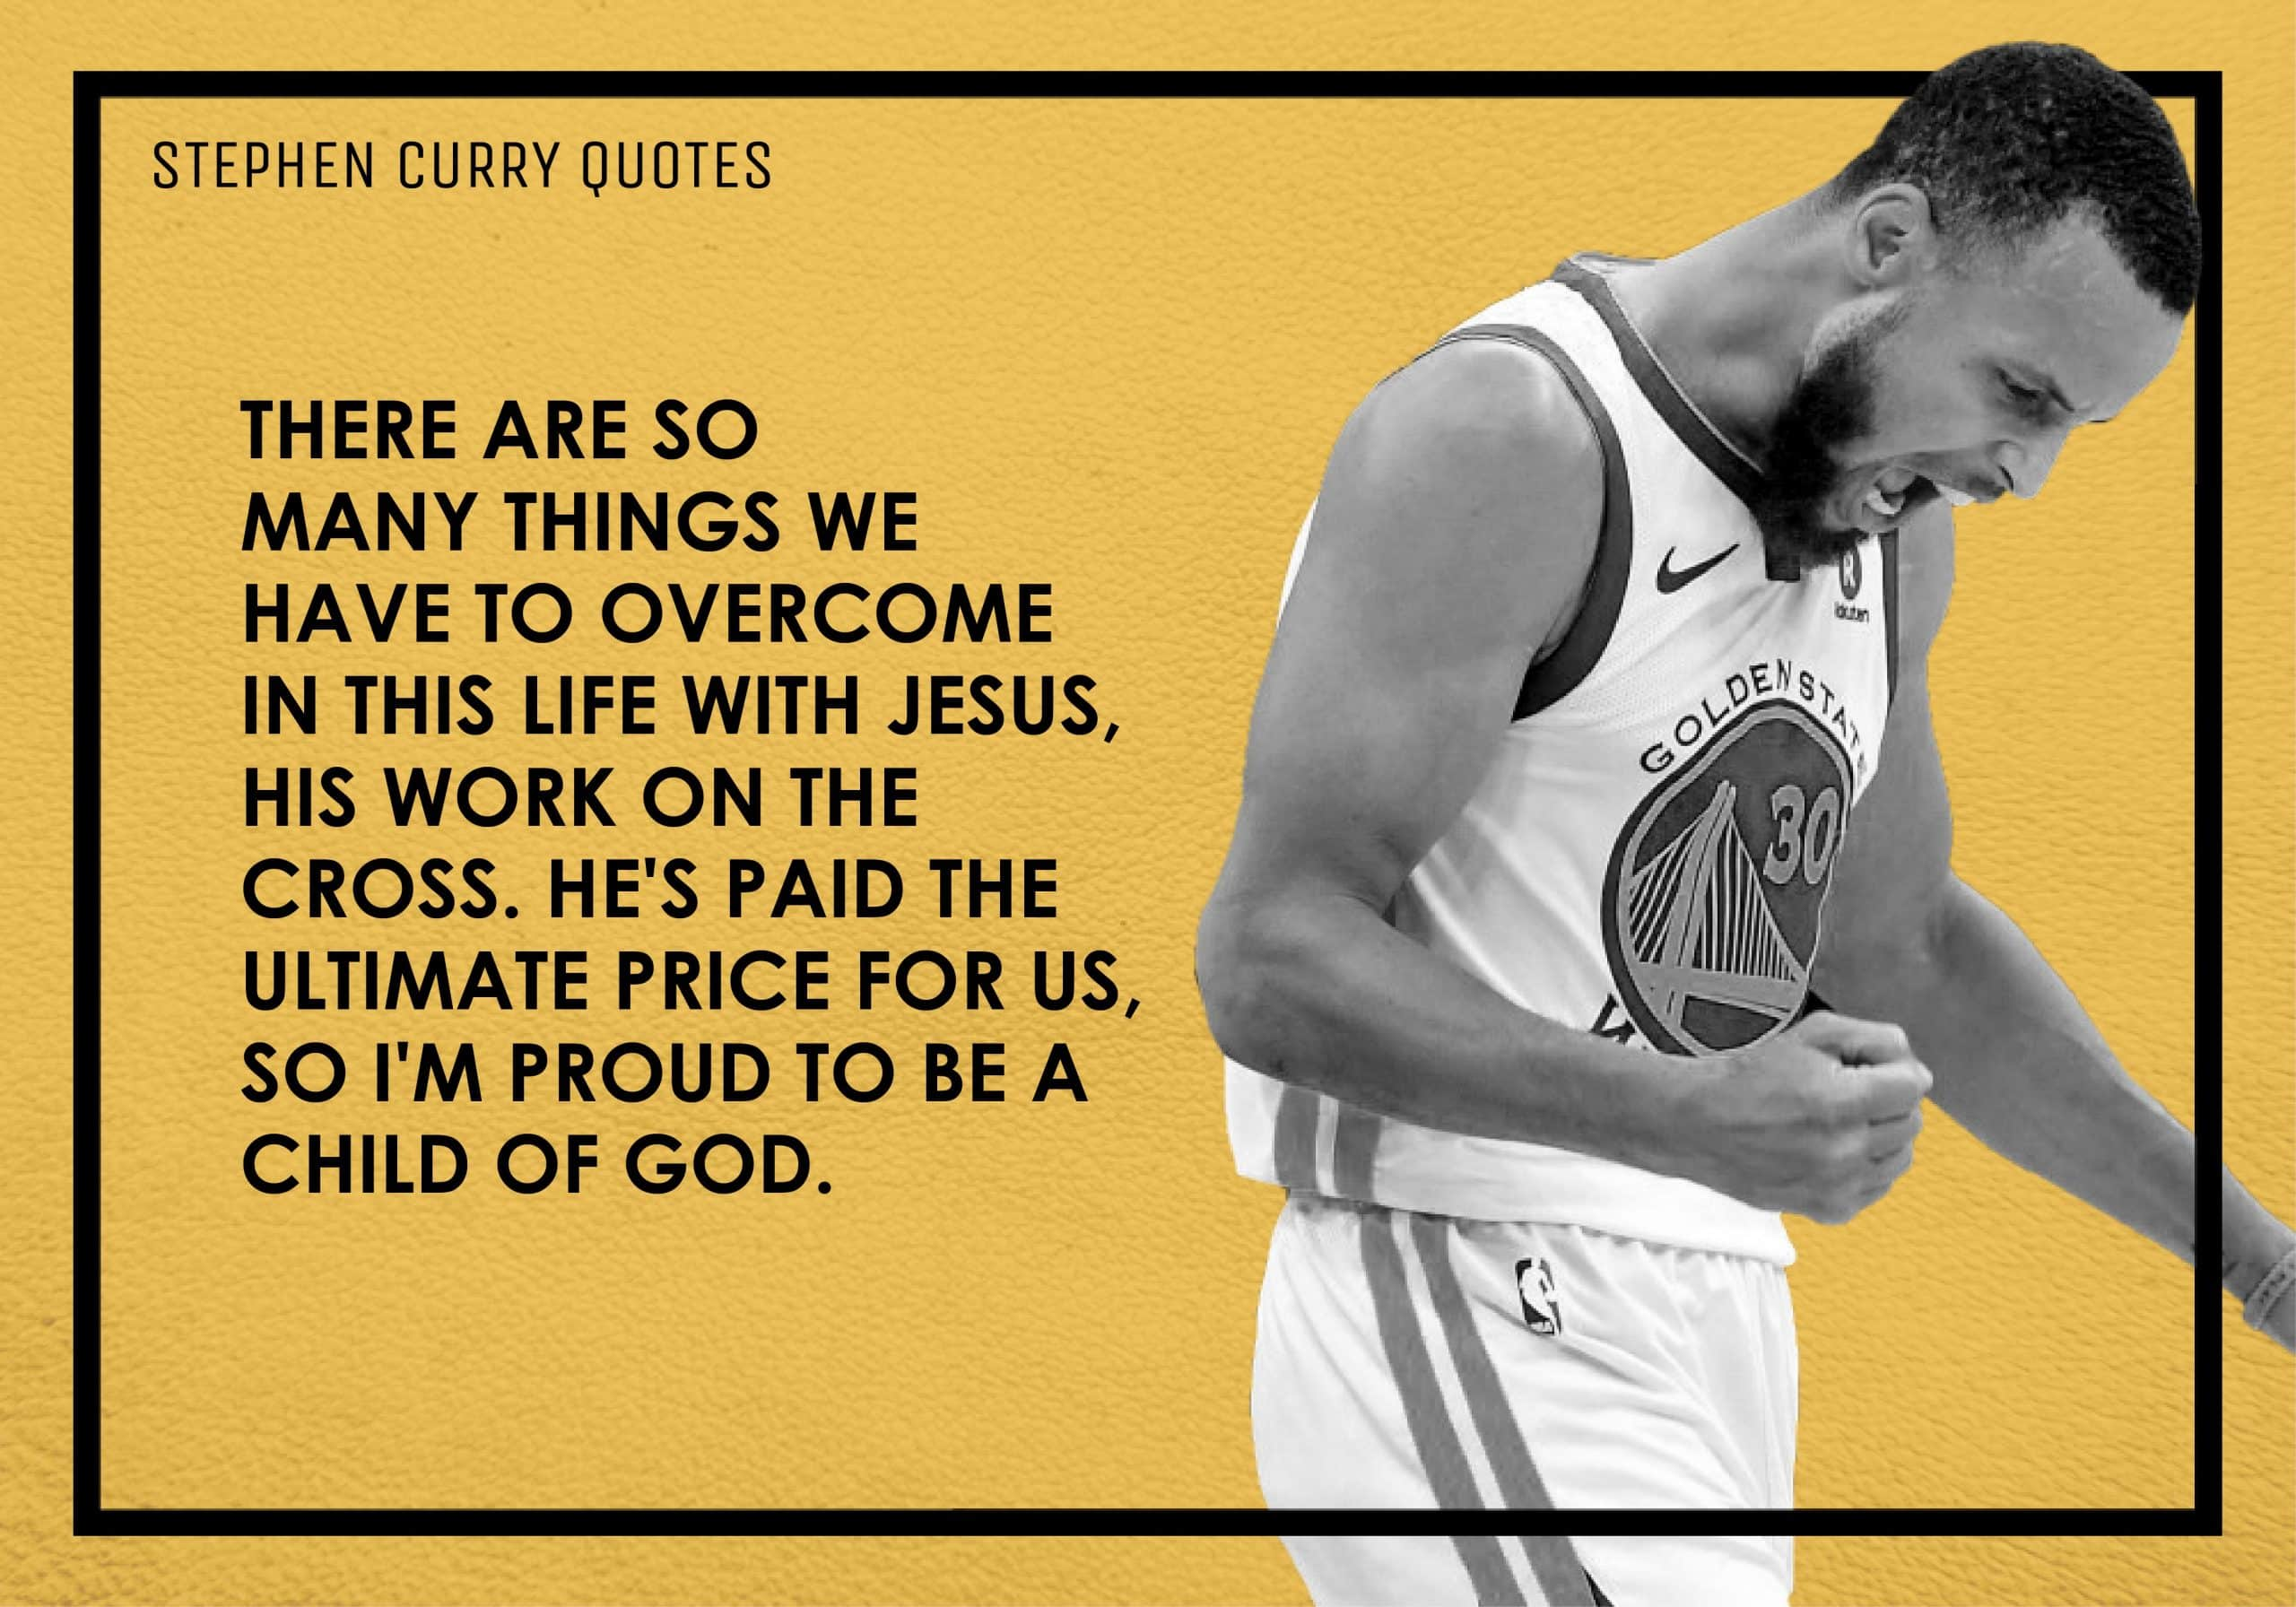 Stephen Curry Quotes (15)